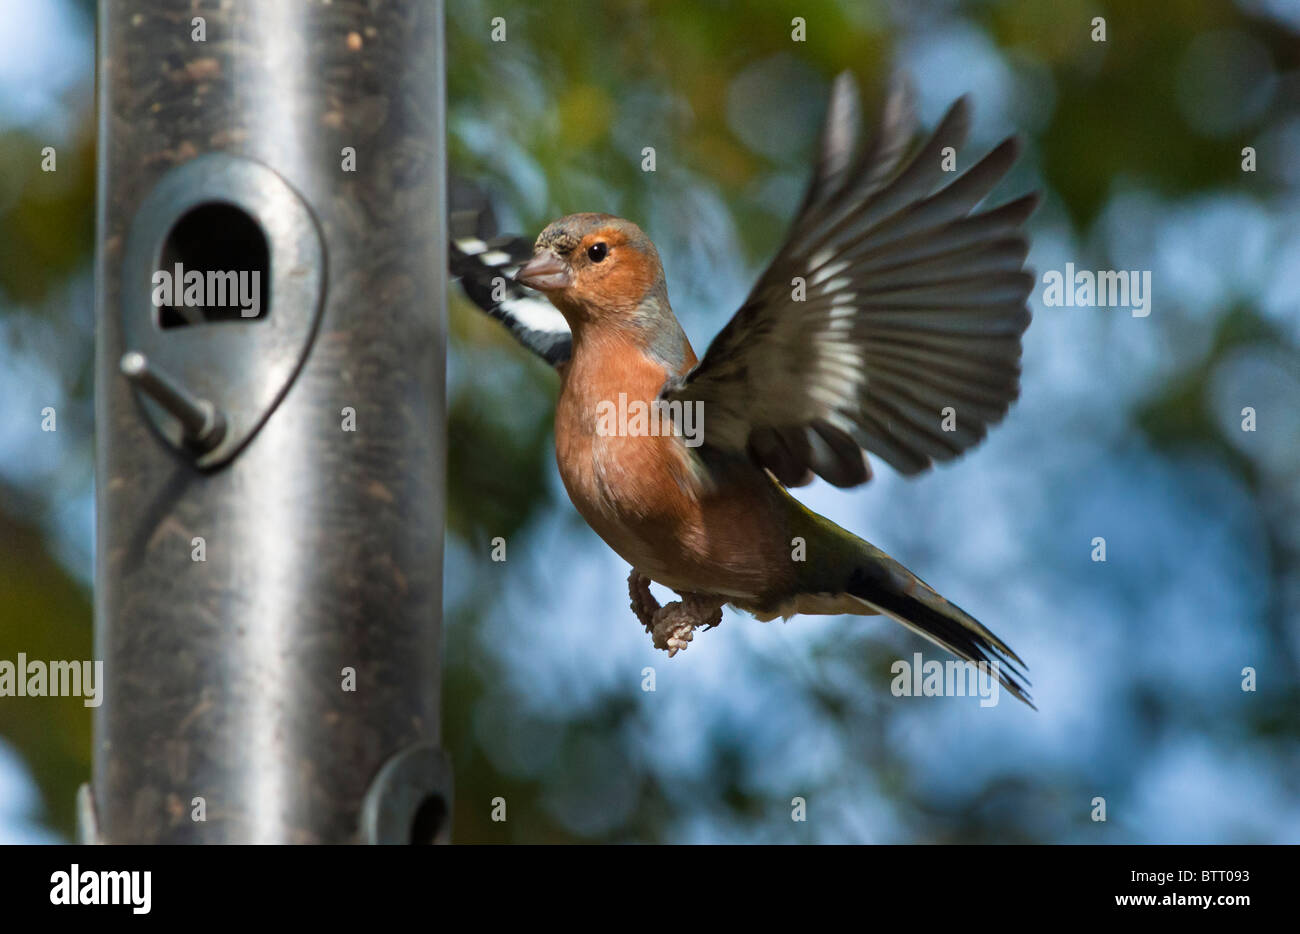 Male Chaffinch about to land on a feeder in an English garden. - Stock Image